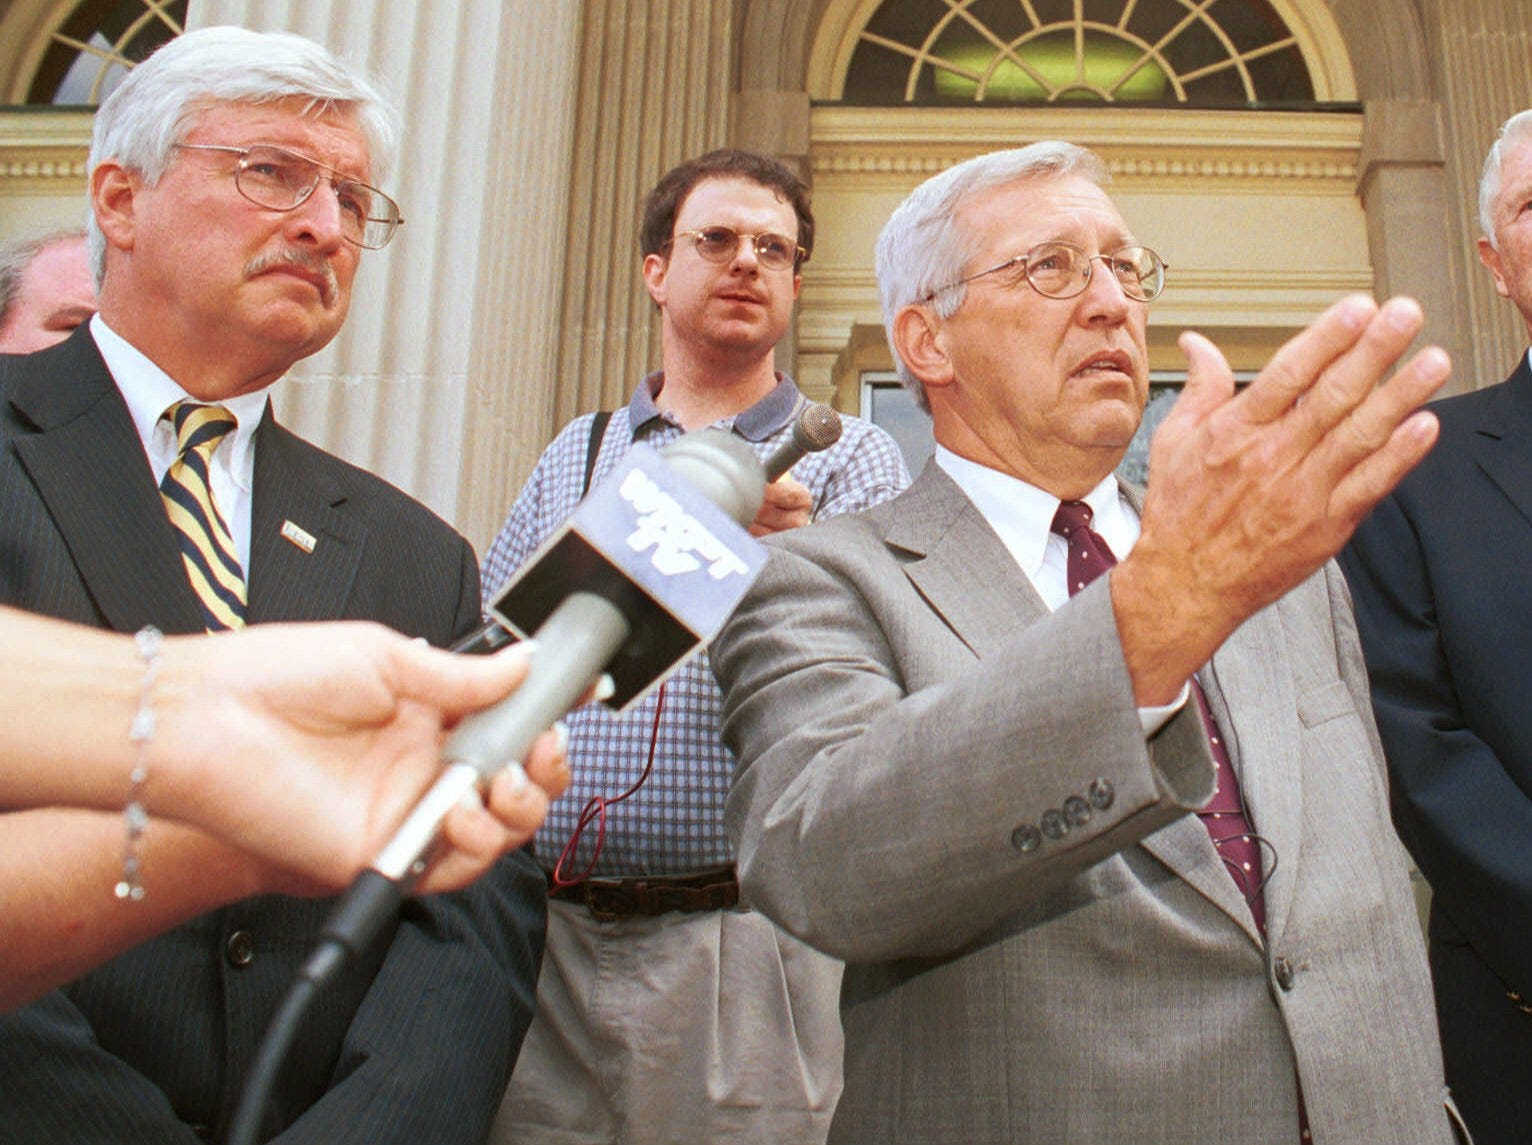 Tennessee Gov. Don Sundquist talks to the reporters outside the old Charles Sherrod Library at East Tennessee State University in Johnson City, Tenn., Tuesday, July 24, 2001 as  Dr. Paul Stanton, left,  president of the University and state Rep. Zane Whitson of Erwin, Tenn., right look on.  The old building has not been able to be converted to new space due to the recent budget cuts.  (AP Photo/Earl Neikirk)